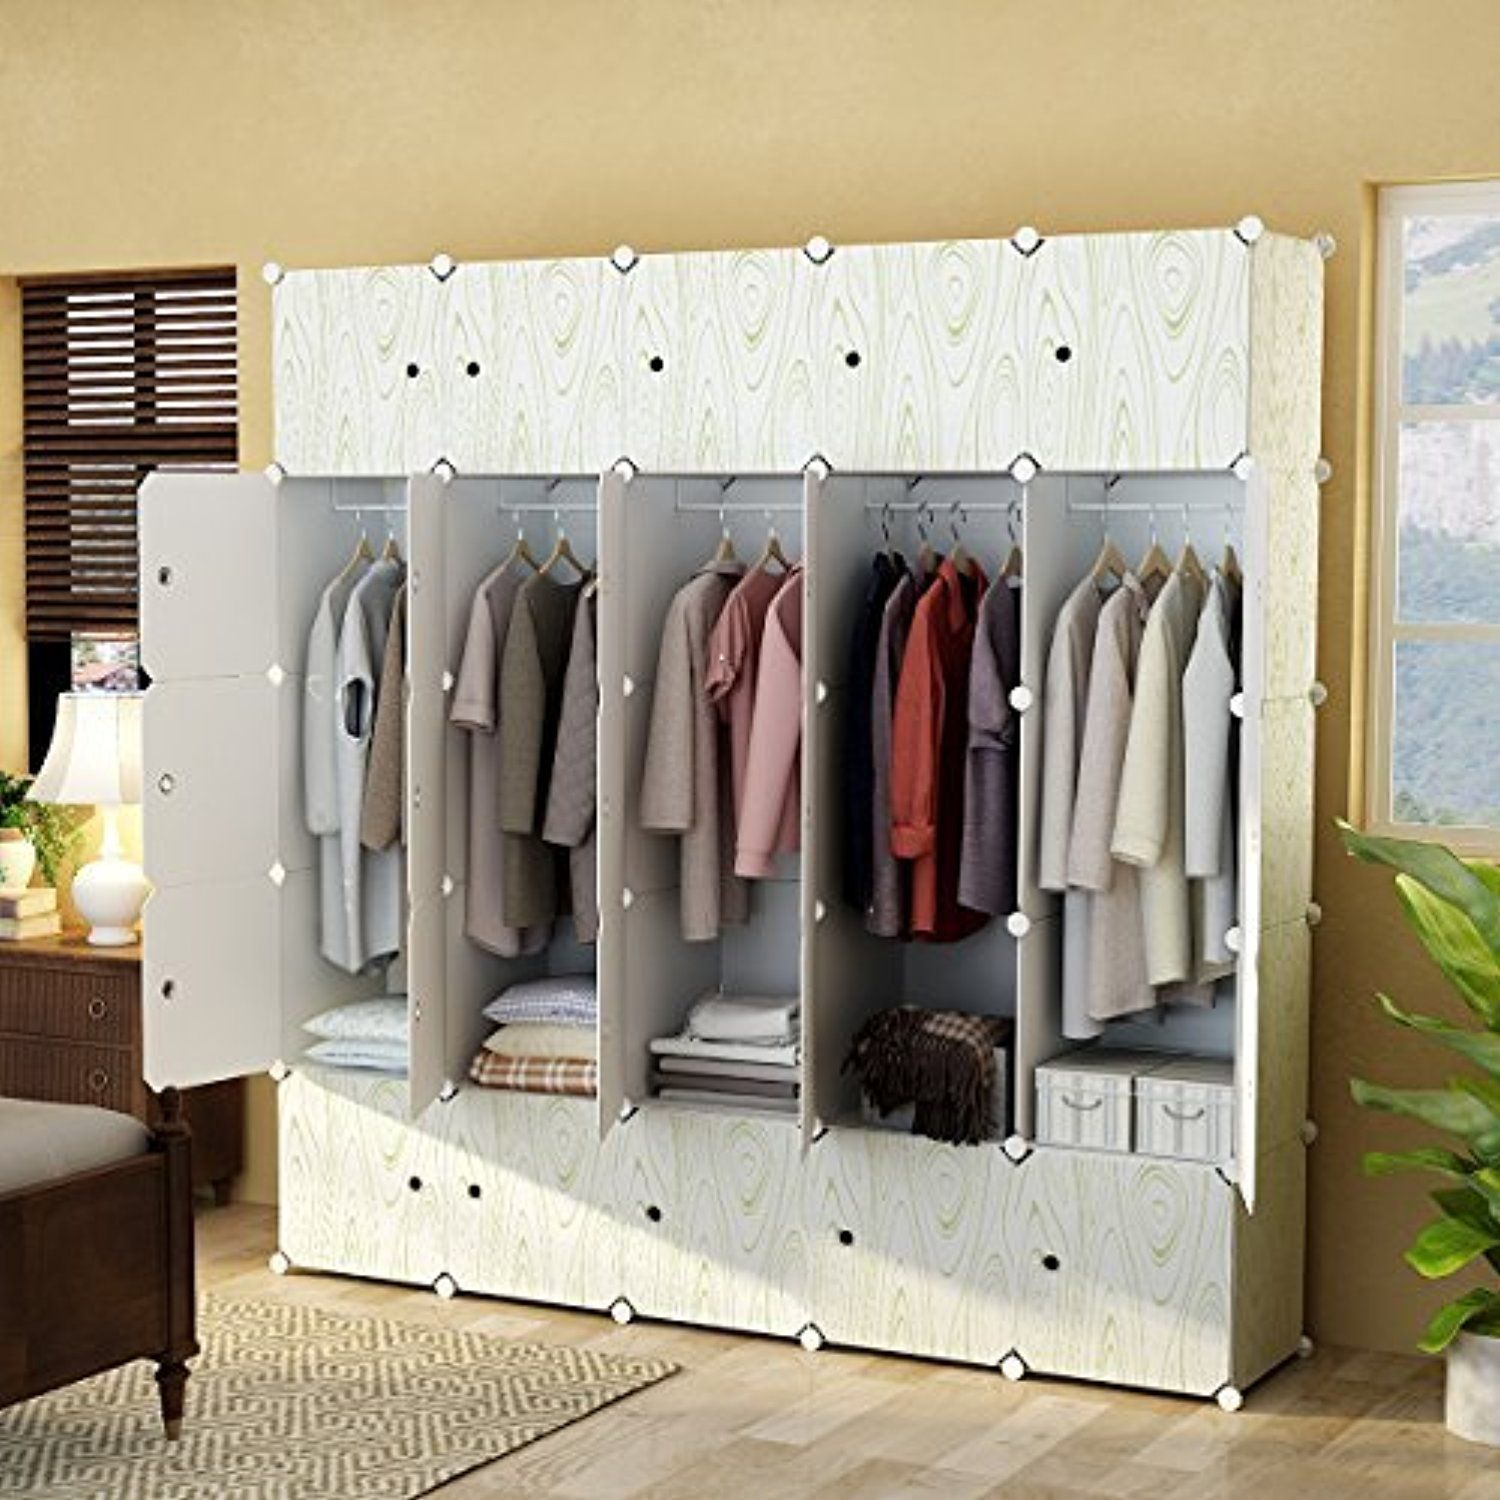 Kousi Portable Closet Clothes Wardrobe Bedroom Armoire Storage Organizer With Doors Capacious Kidshomestore Clothes Closet Portable Closet Wardrobe Closet